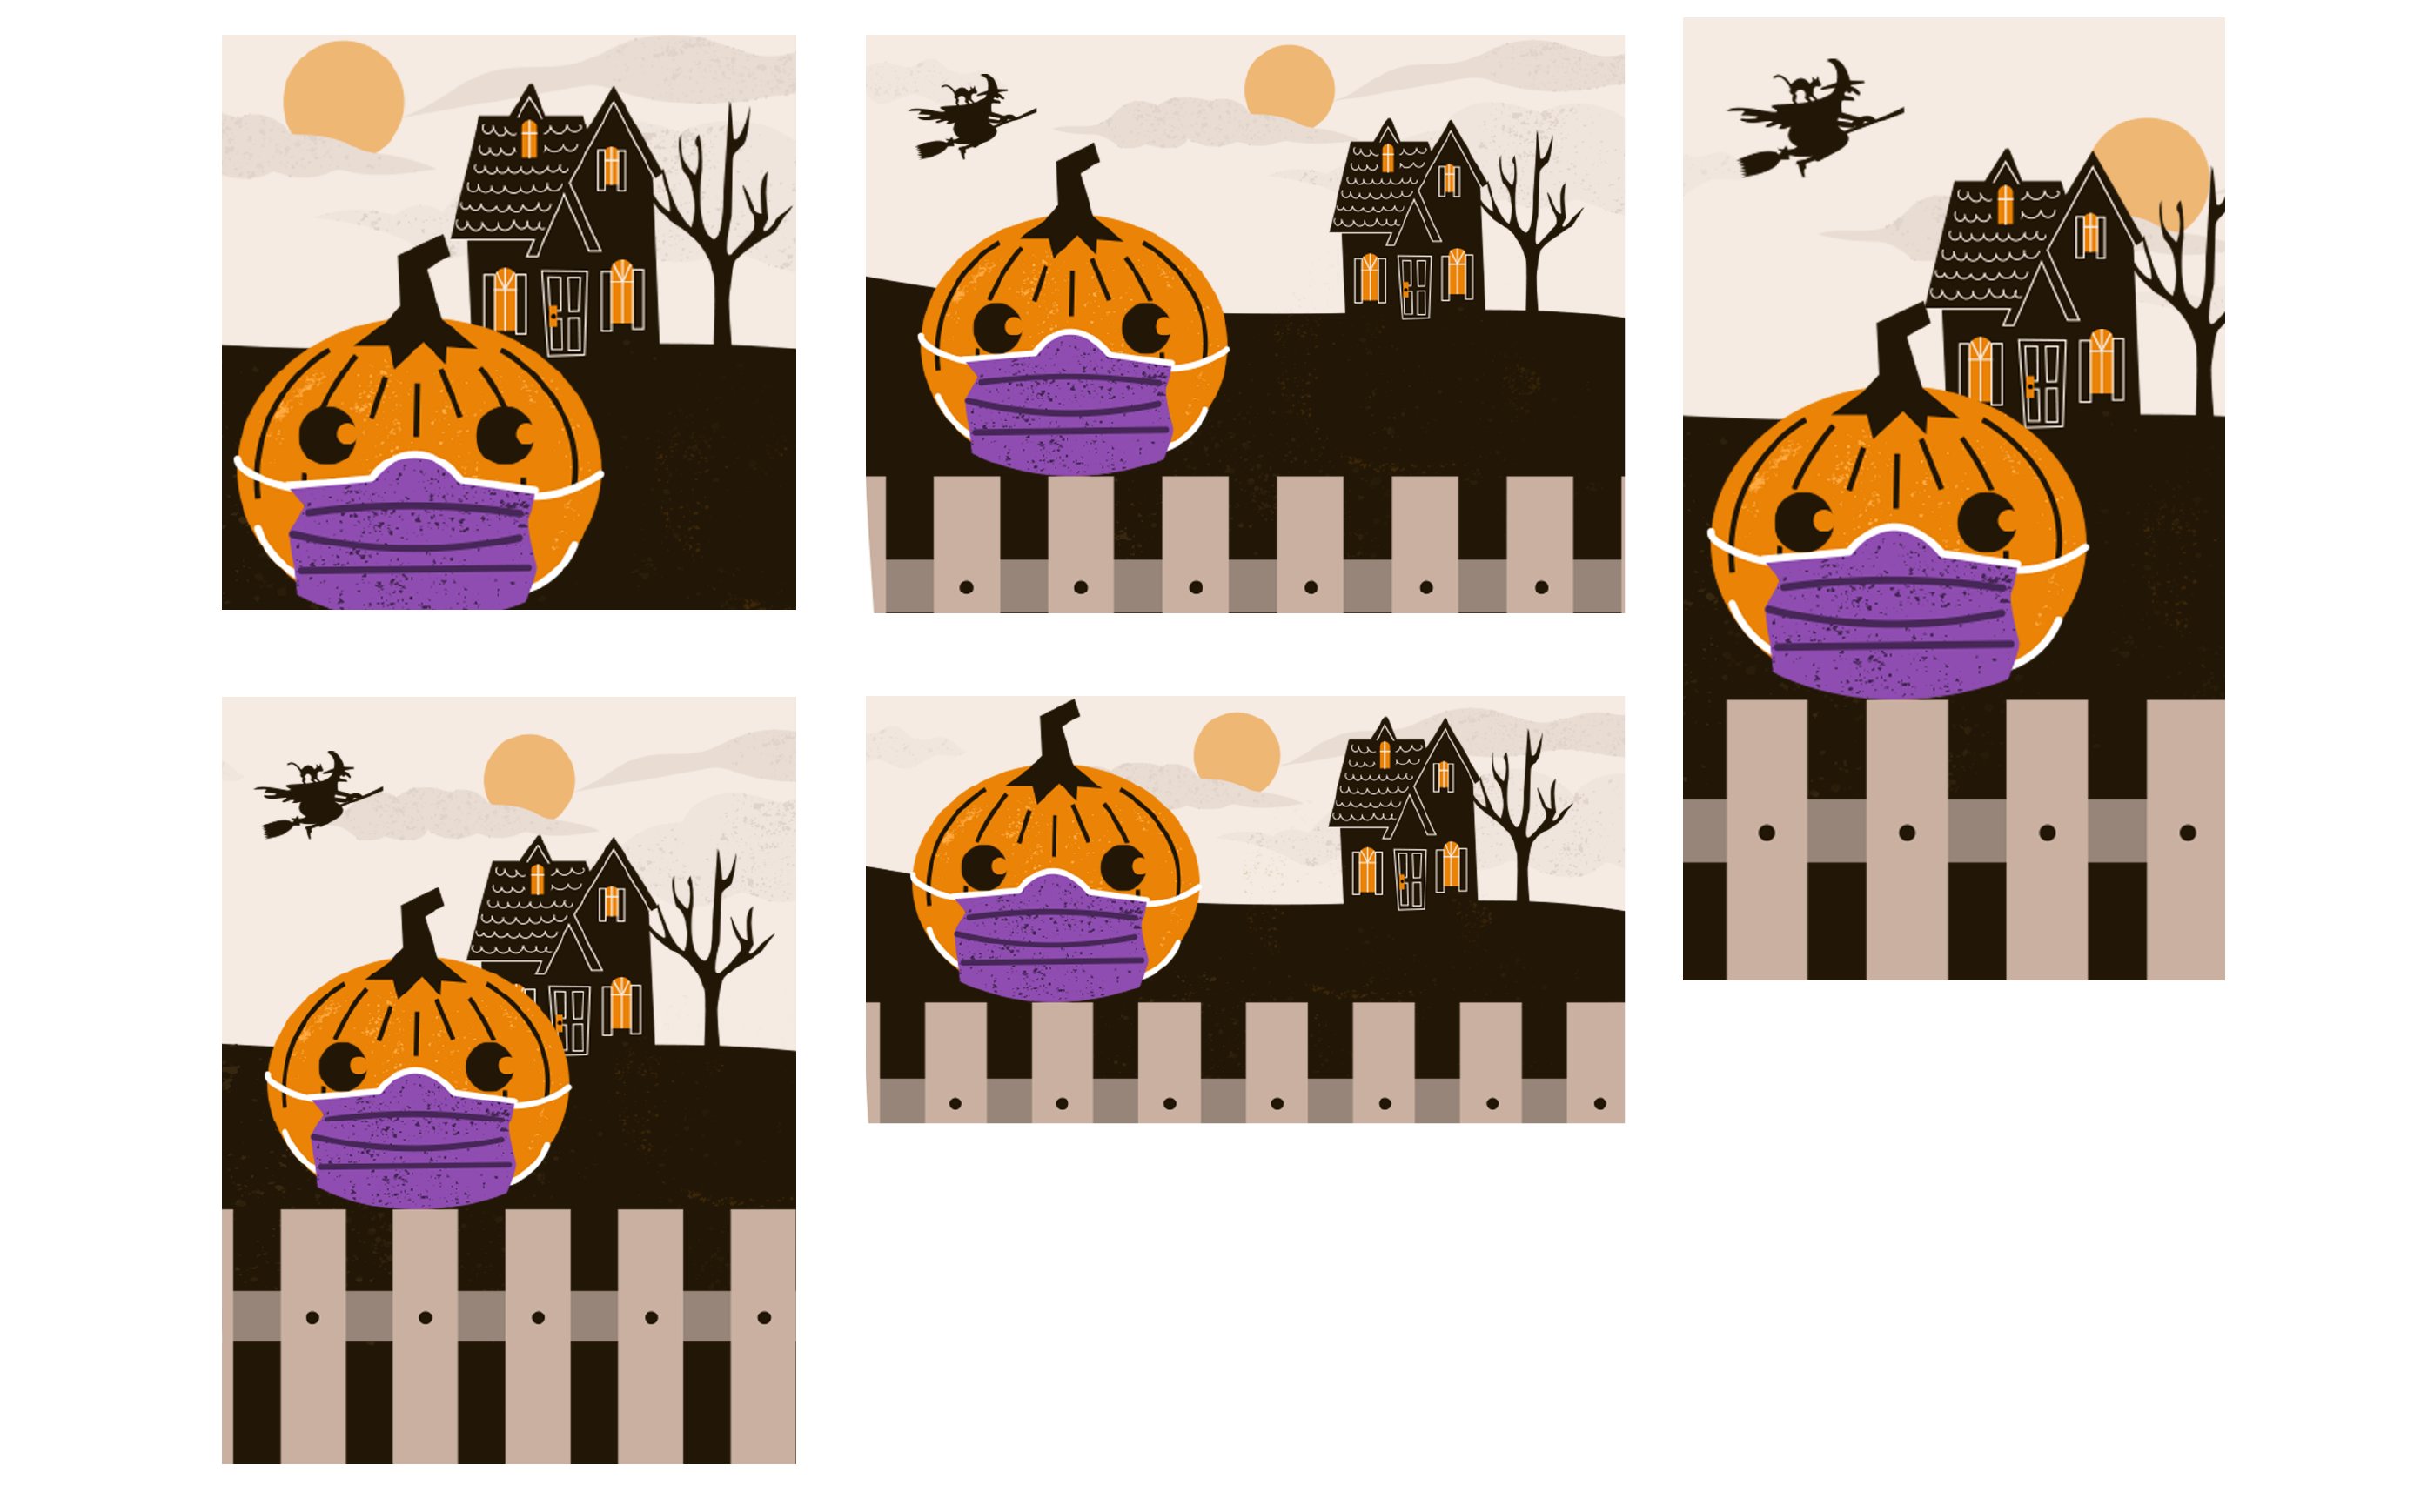 Tips to celebrate Halloween safely during the COVID-19 pandemic